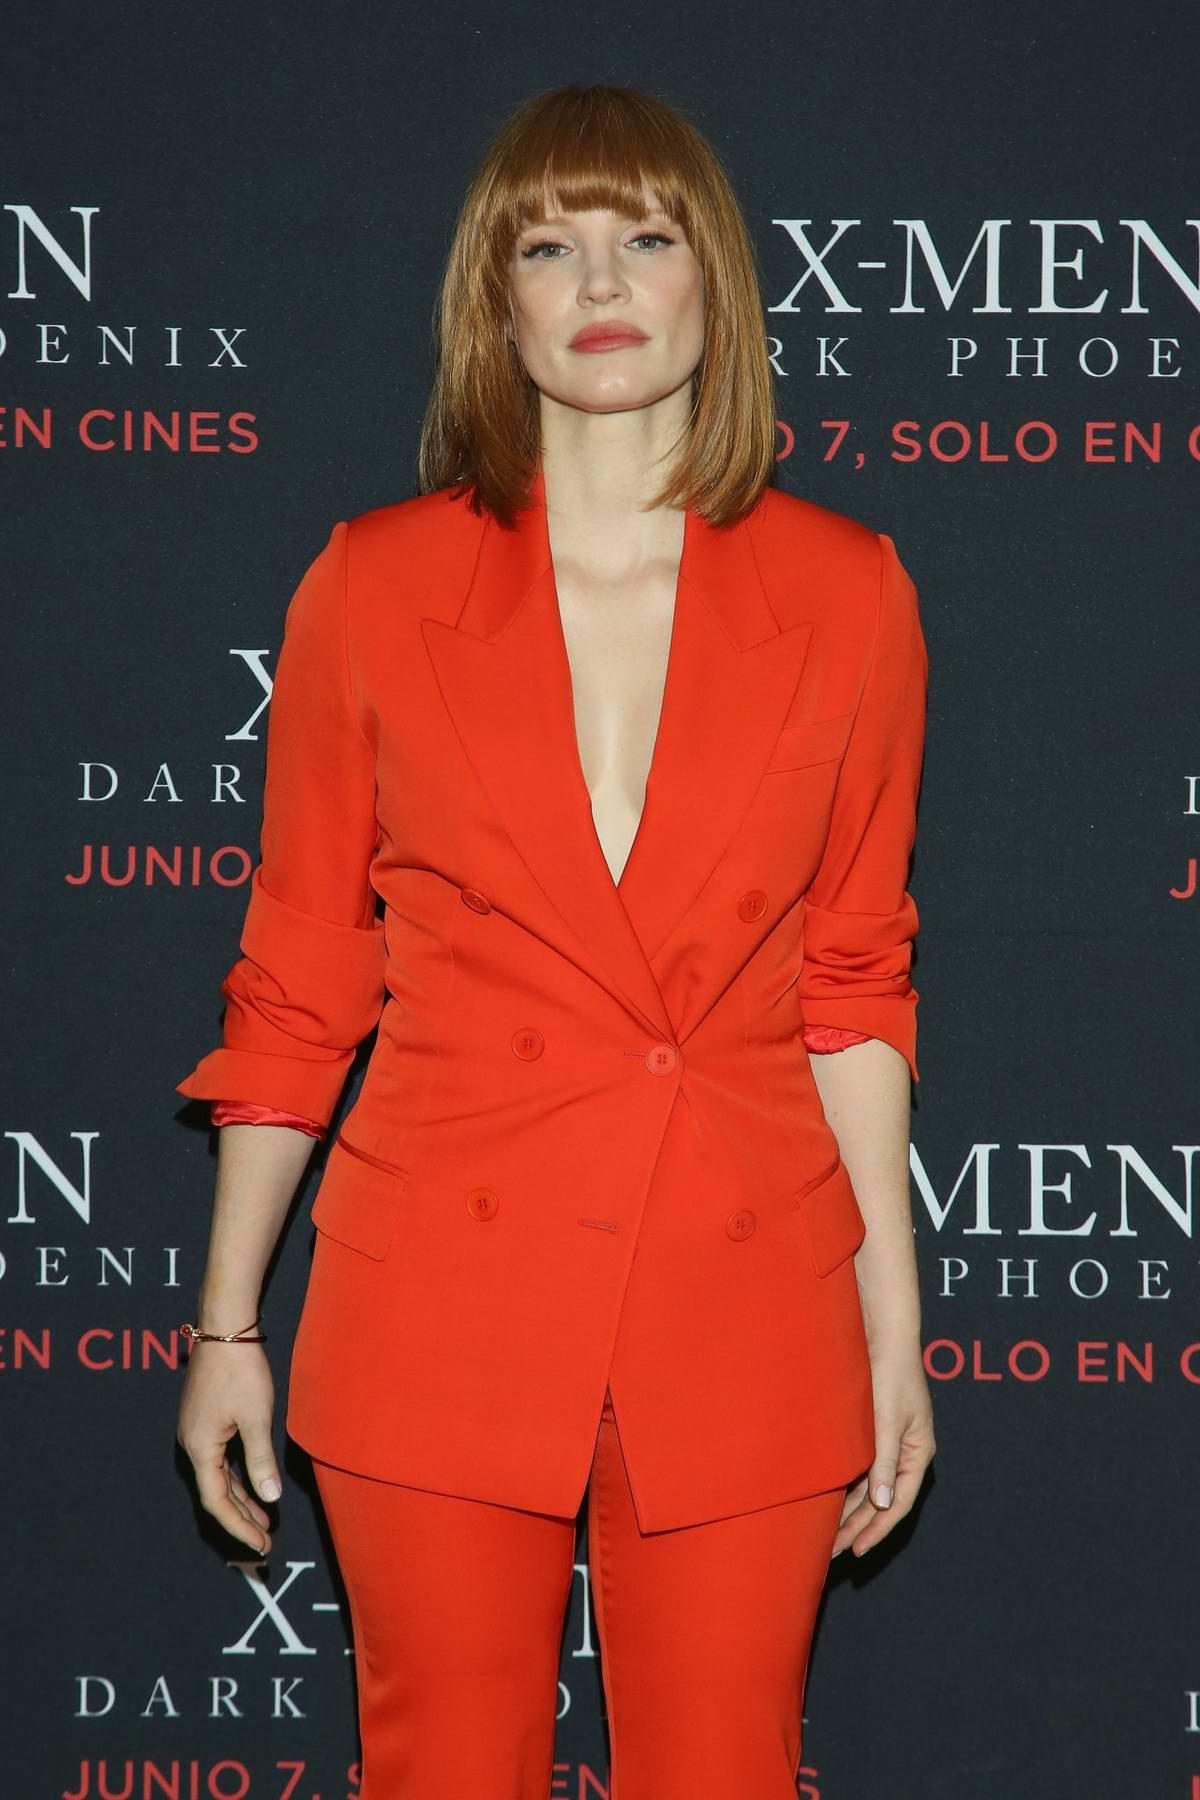 jessica chastain attends a press conference to promote x-men